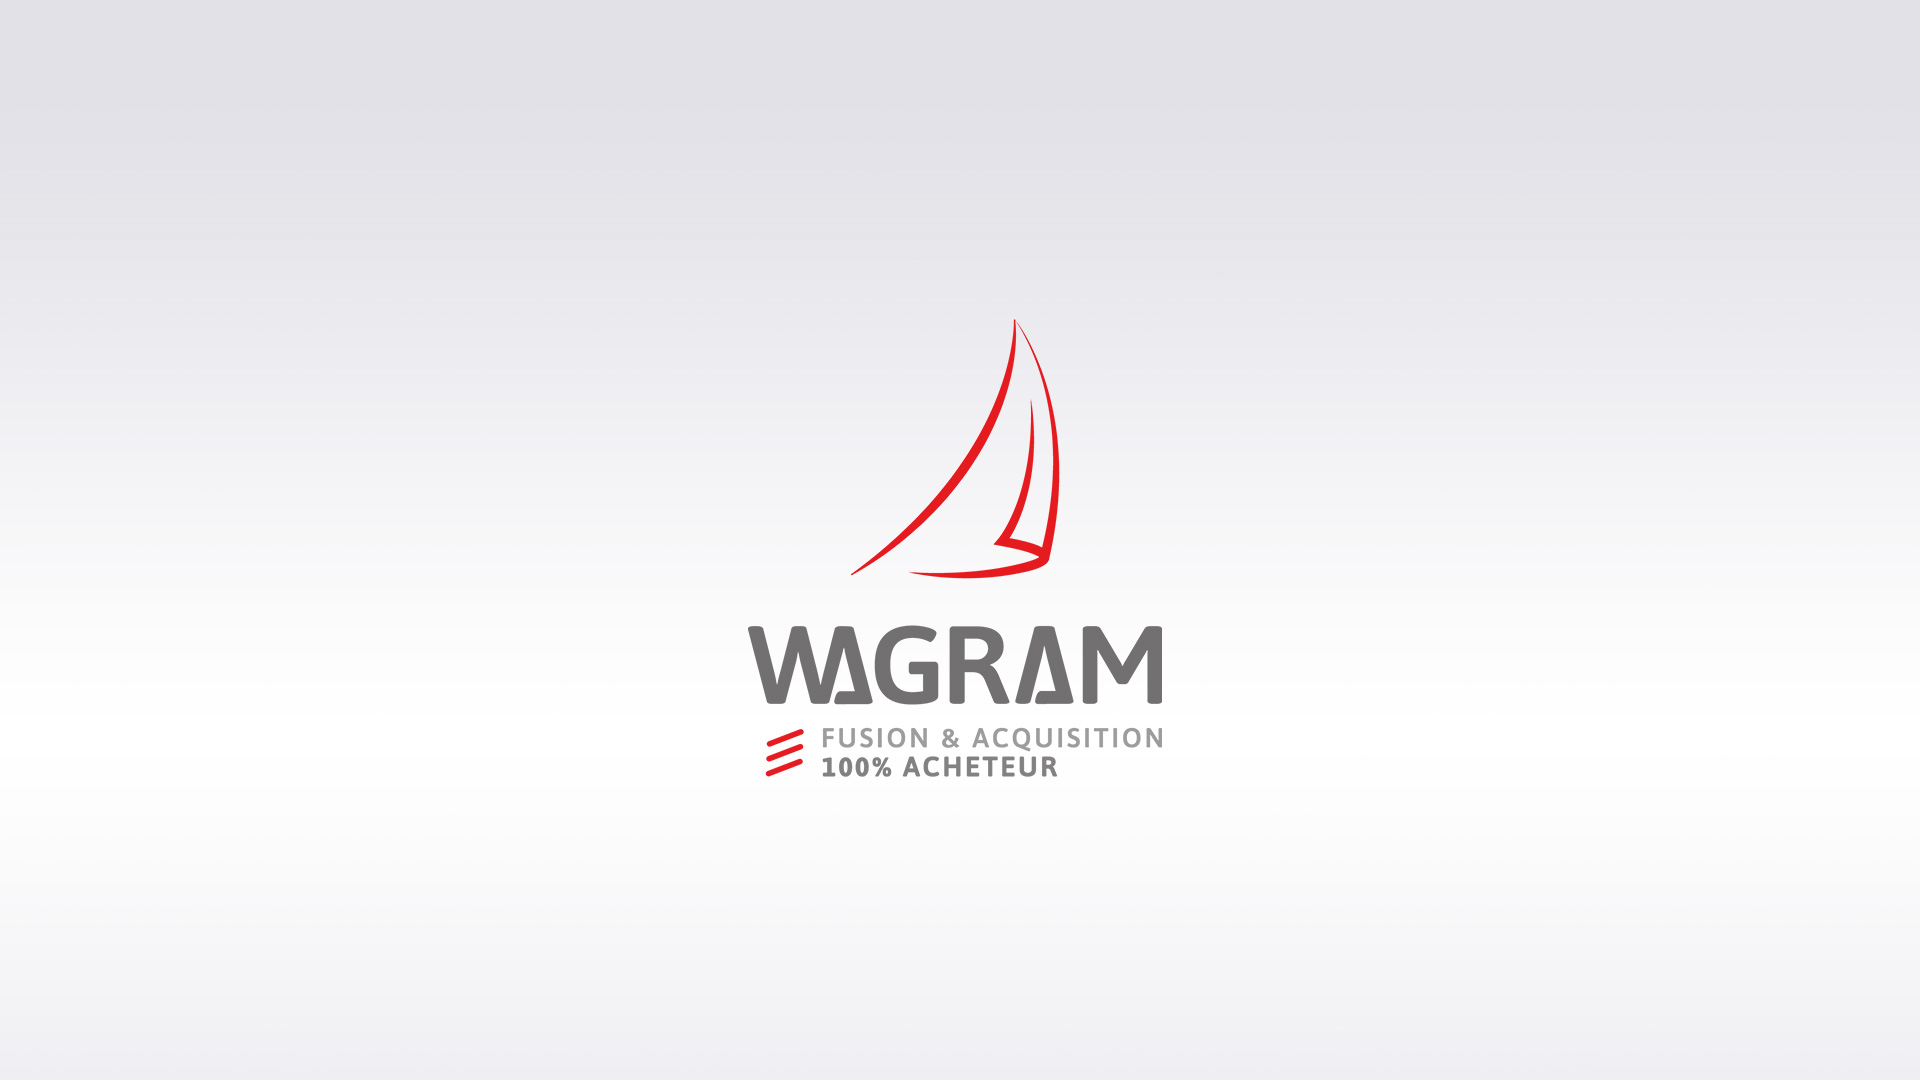 wagram logotype paris